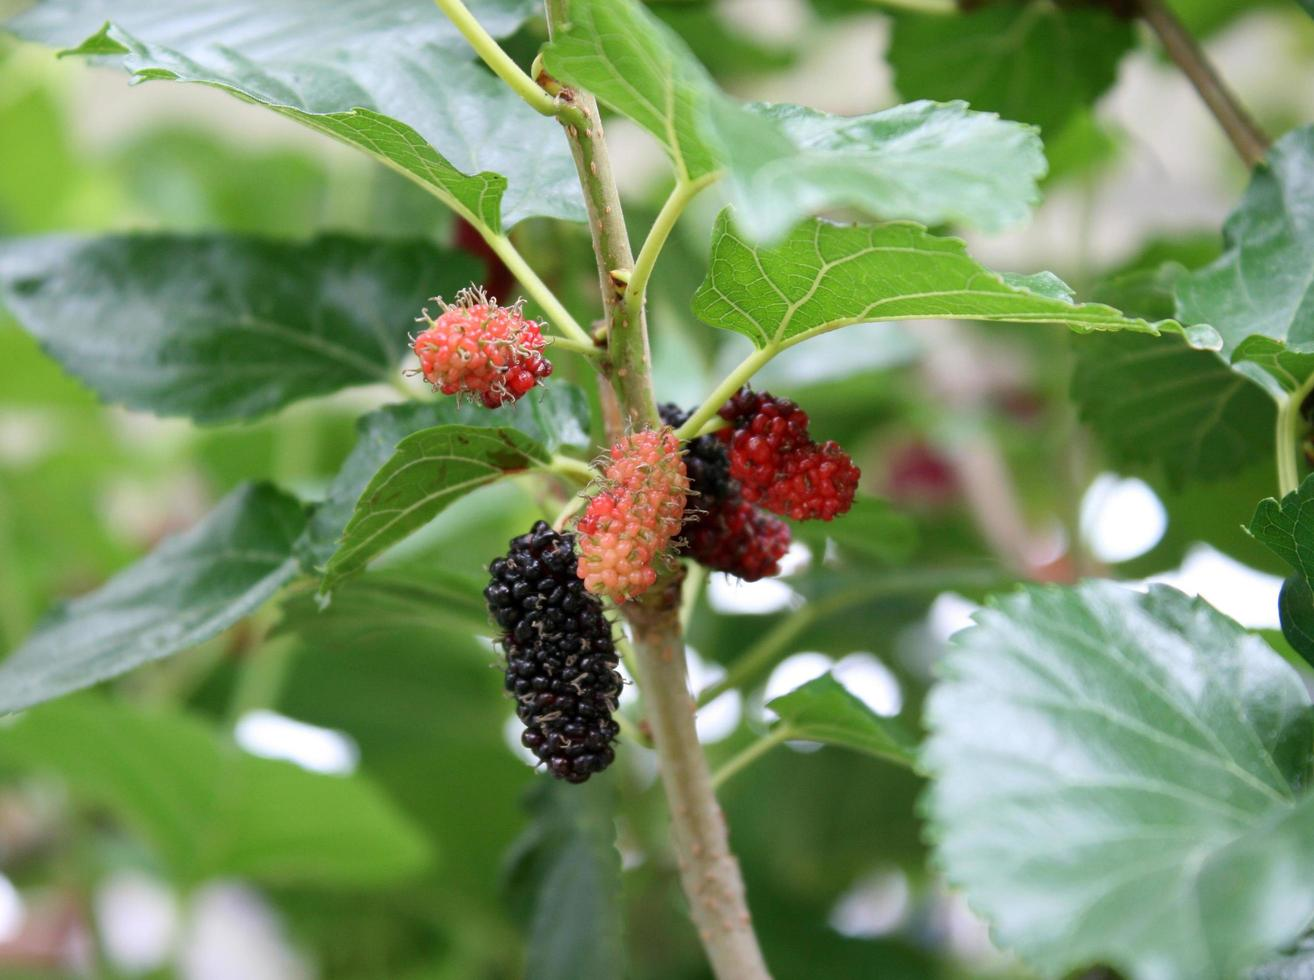 Berries growing outside photo